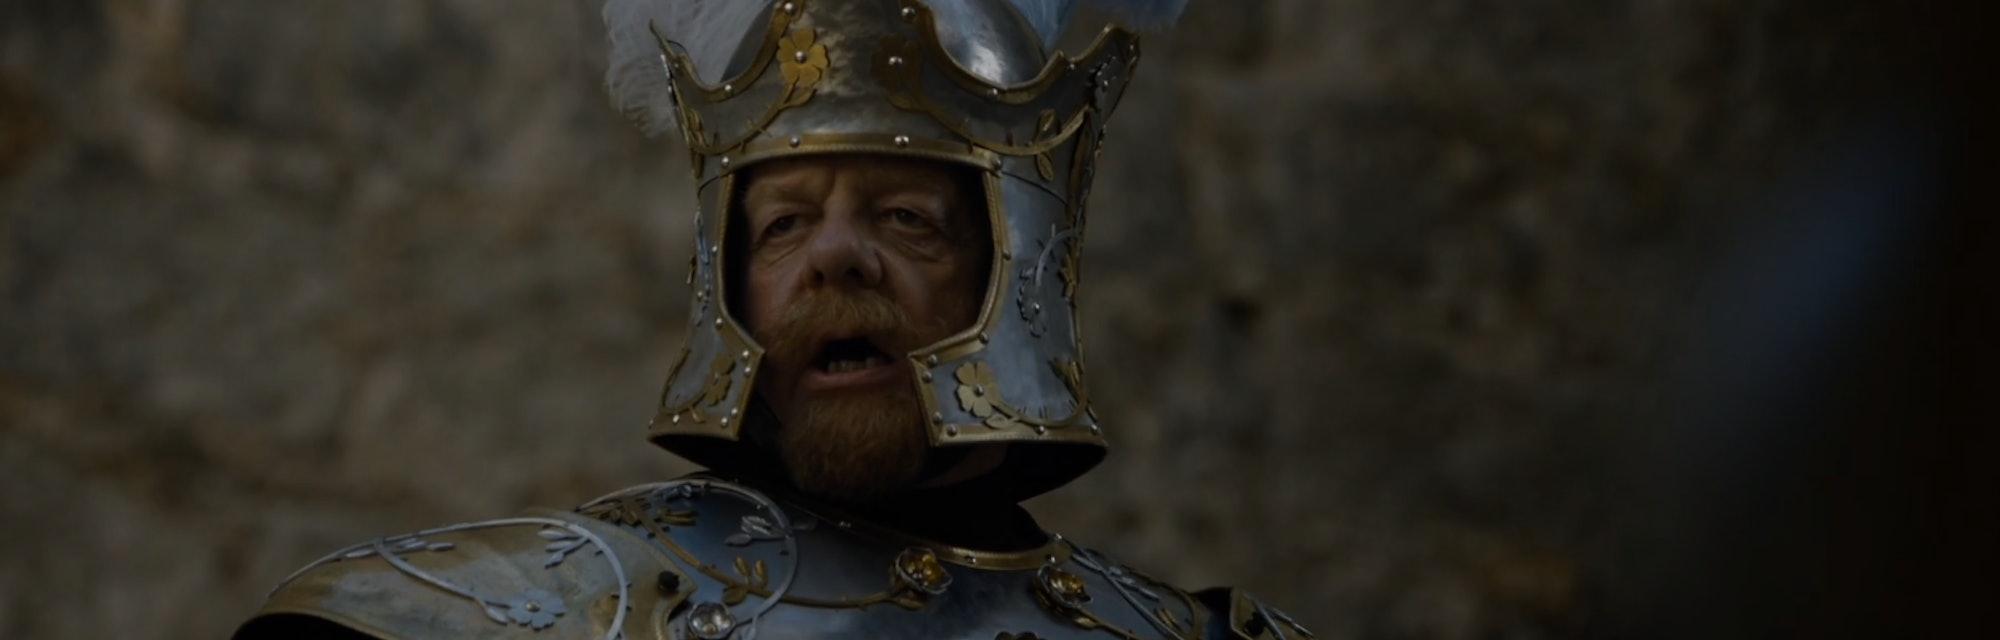 Who Are These Guys Again? The Fashionable Tyrells in Game of ... | 640x2000